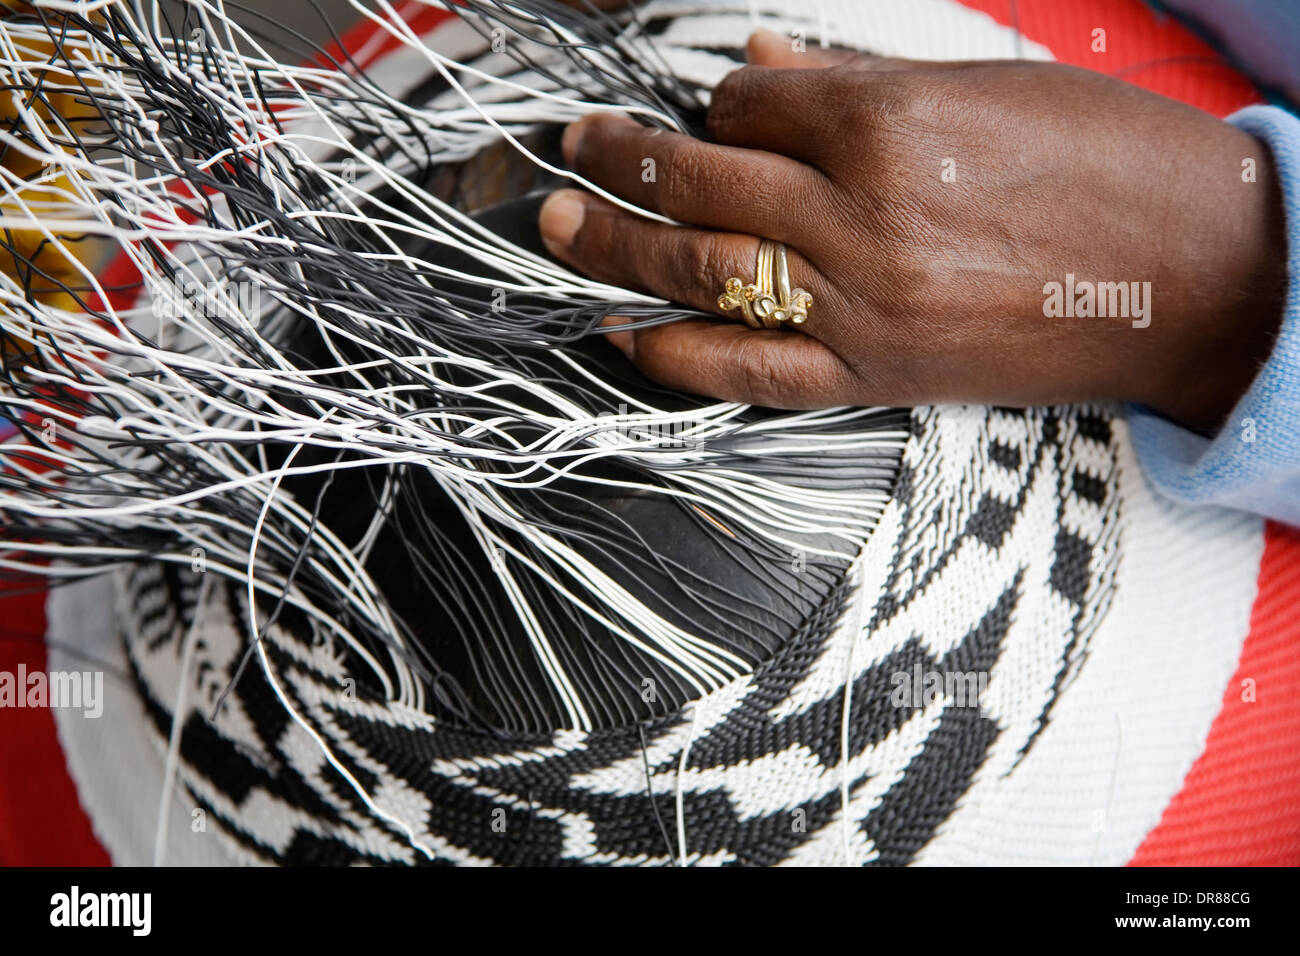 South Africa Telephone Wire Baskets Wiring Diagrams House Color Code Http Wwwuneeksupplycom Pioneerwire Basket Making Jaheni Mkhize Stock Rh Alamy Com Home